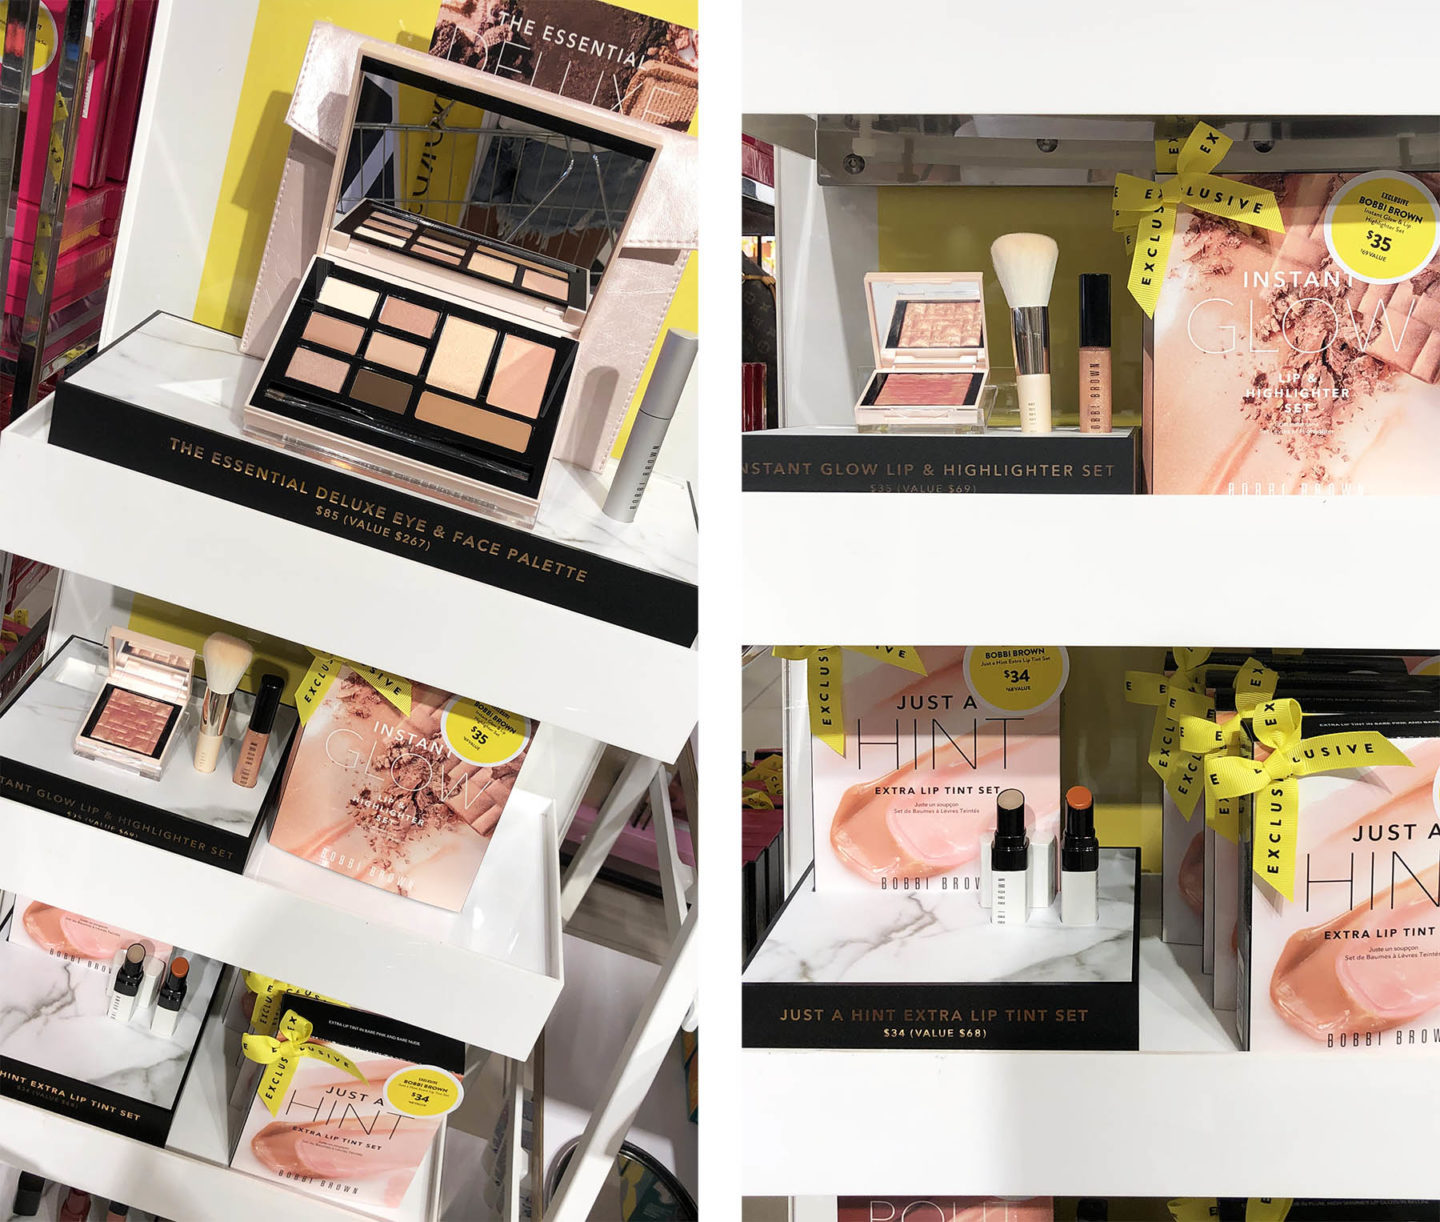 Vente Anniversaire Nordstrom 2019 beauté exclusives Bobbi Brown